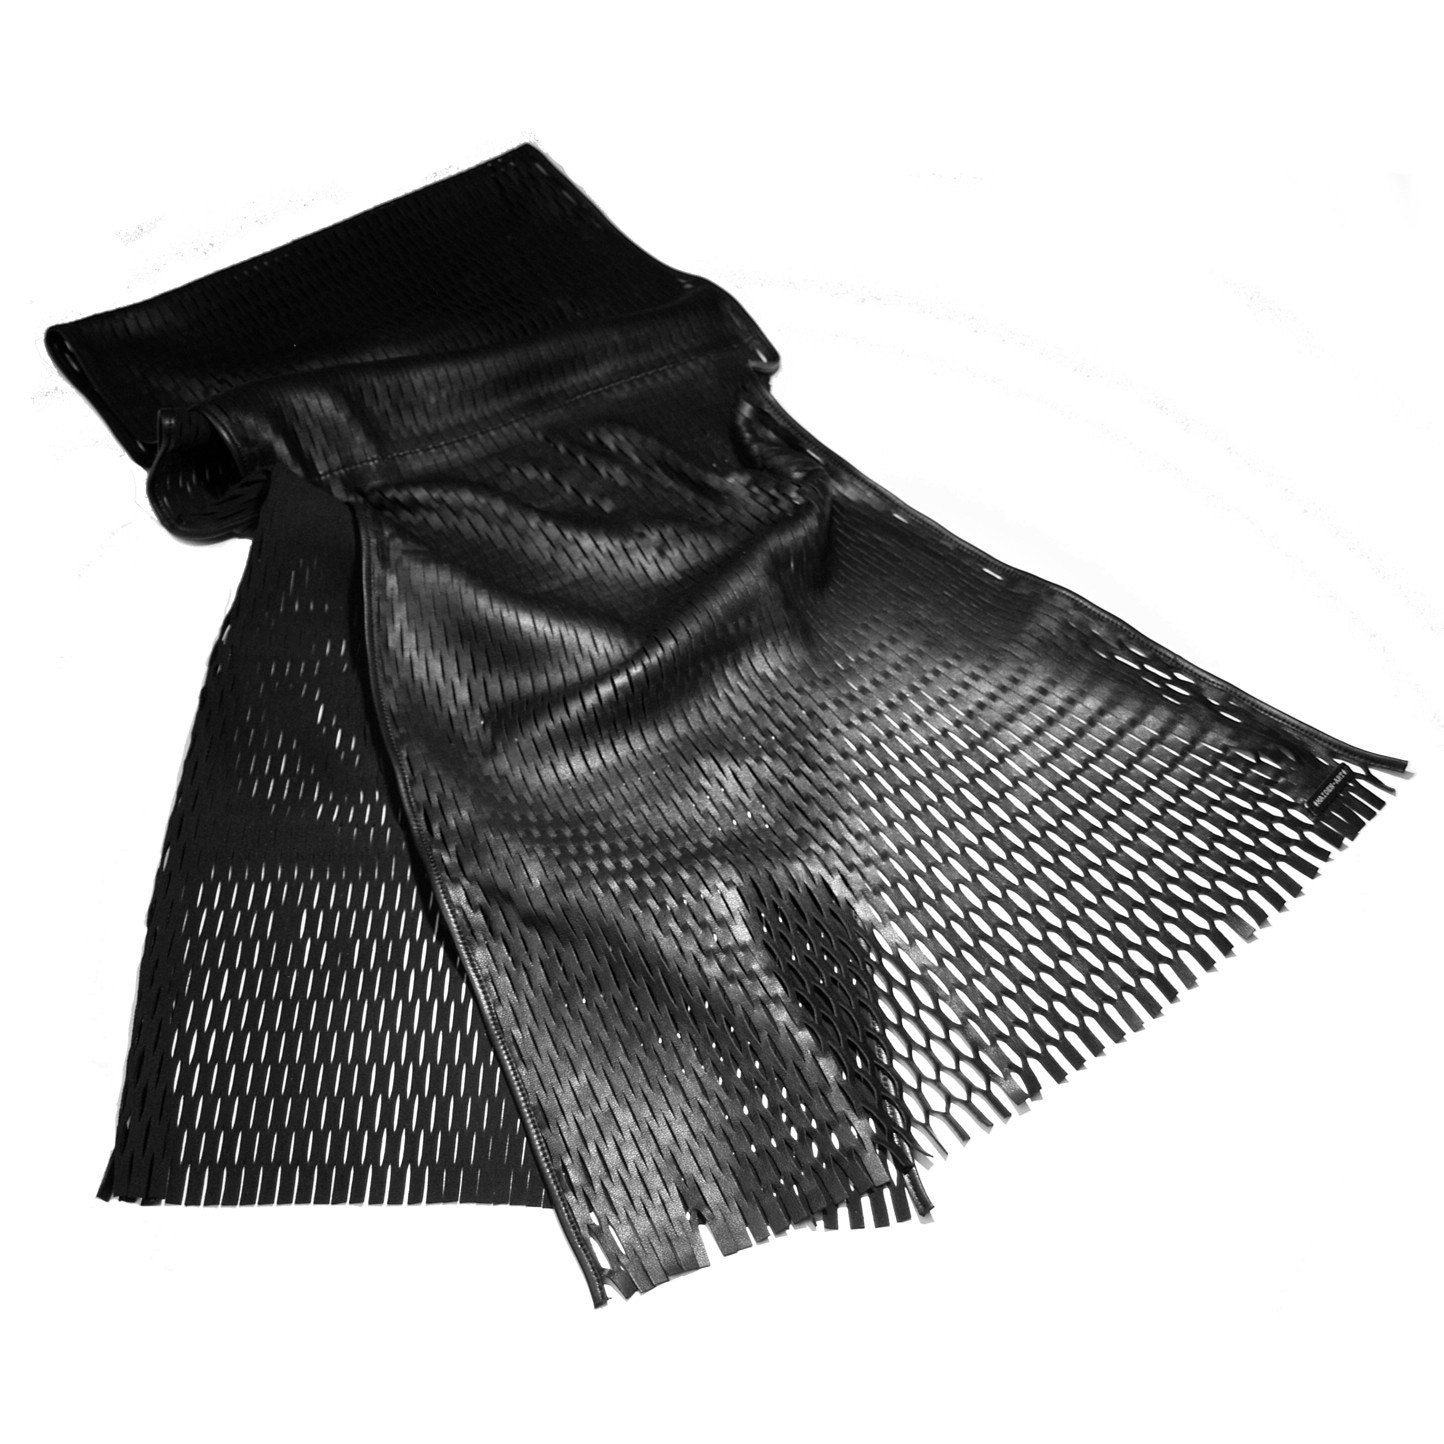 Leather Pleated Scarf by MaidenArt on Etsy from etsy.com